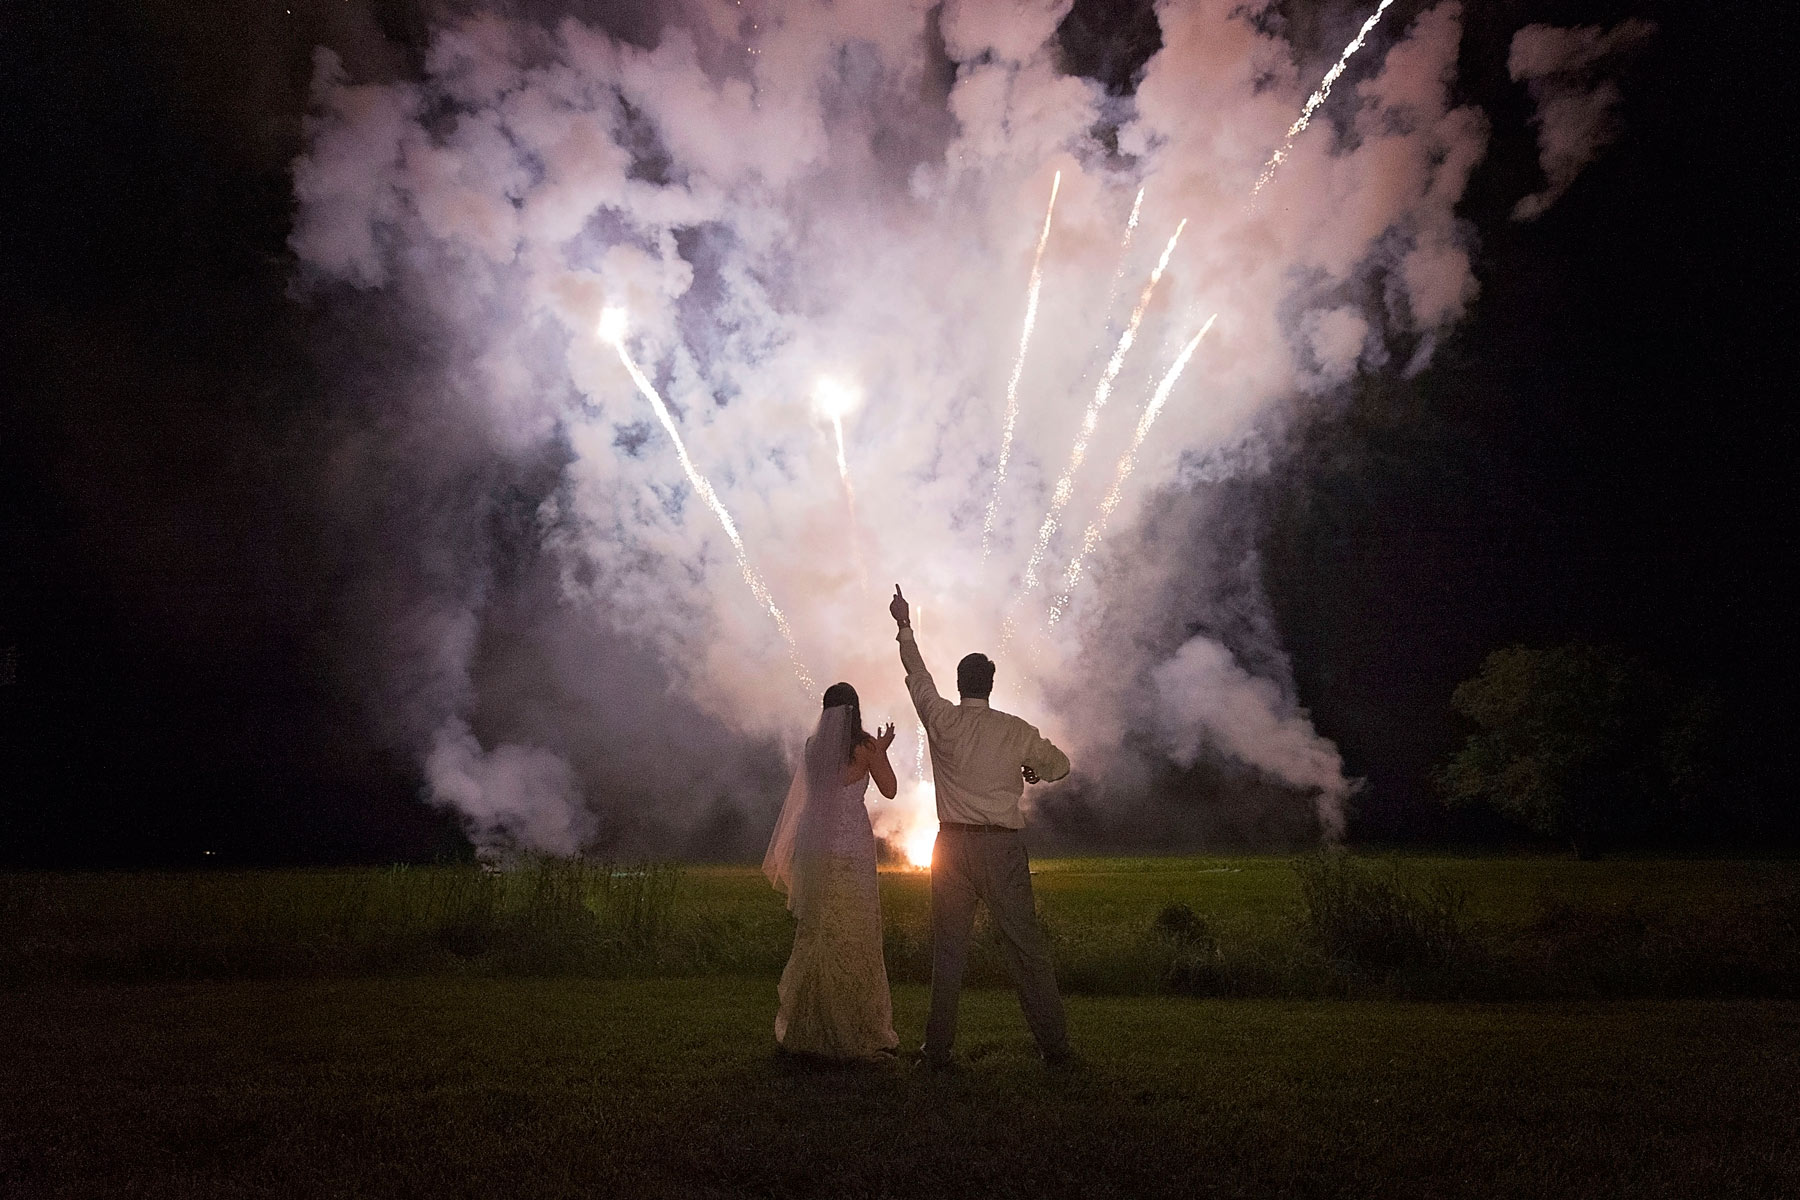 Bride and groom react to fireworks with excitement